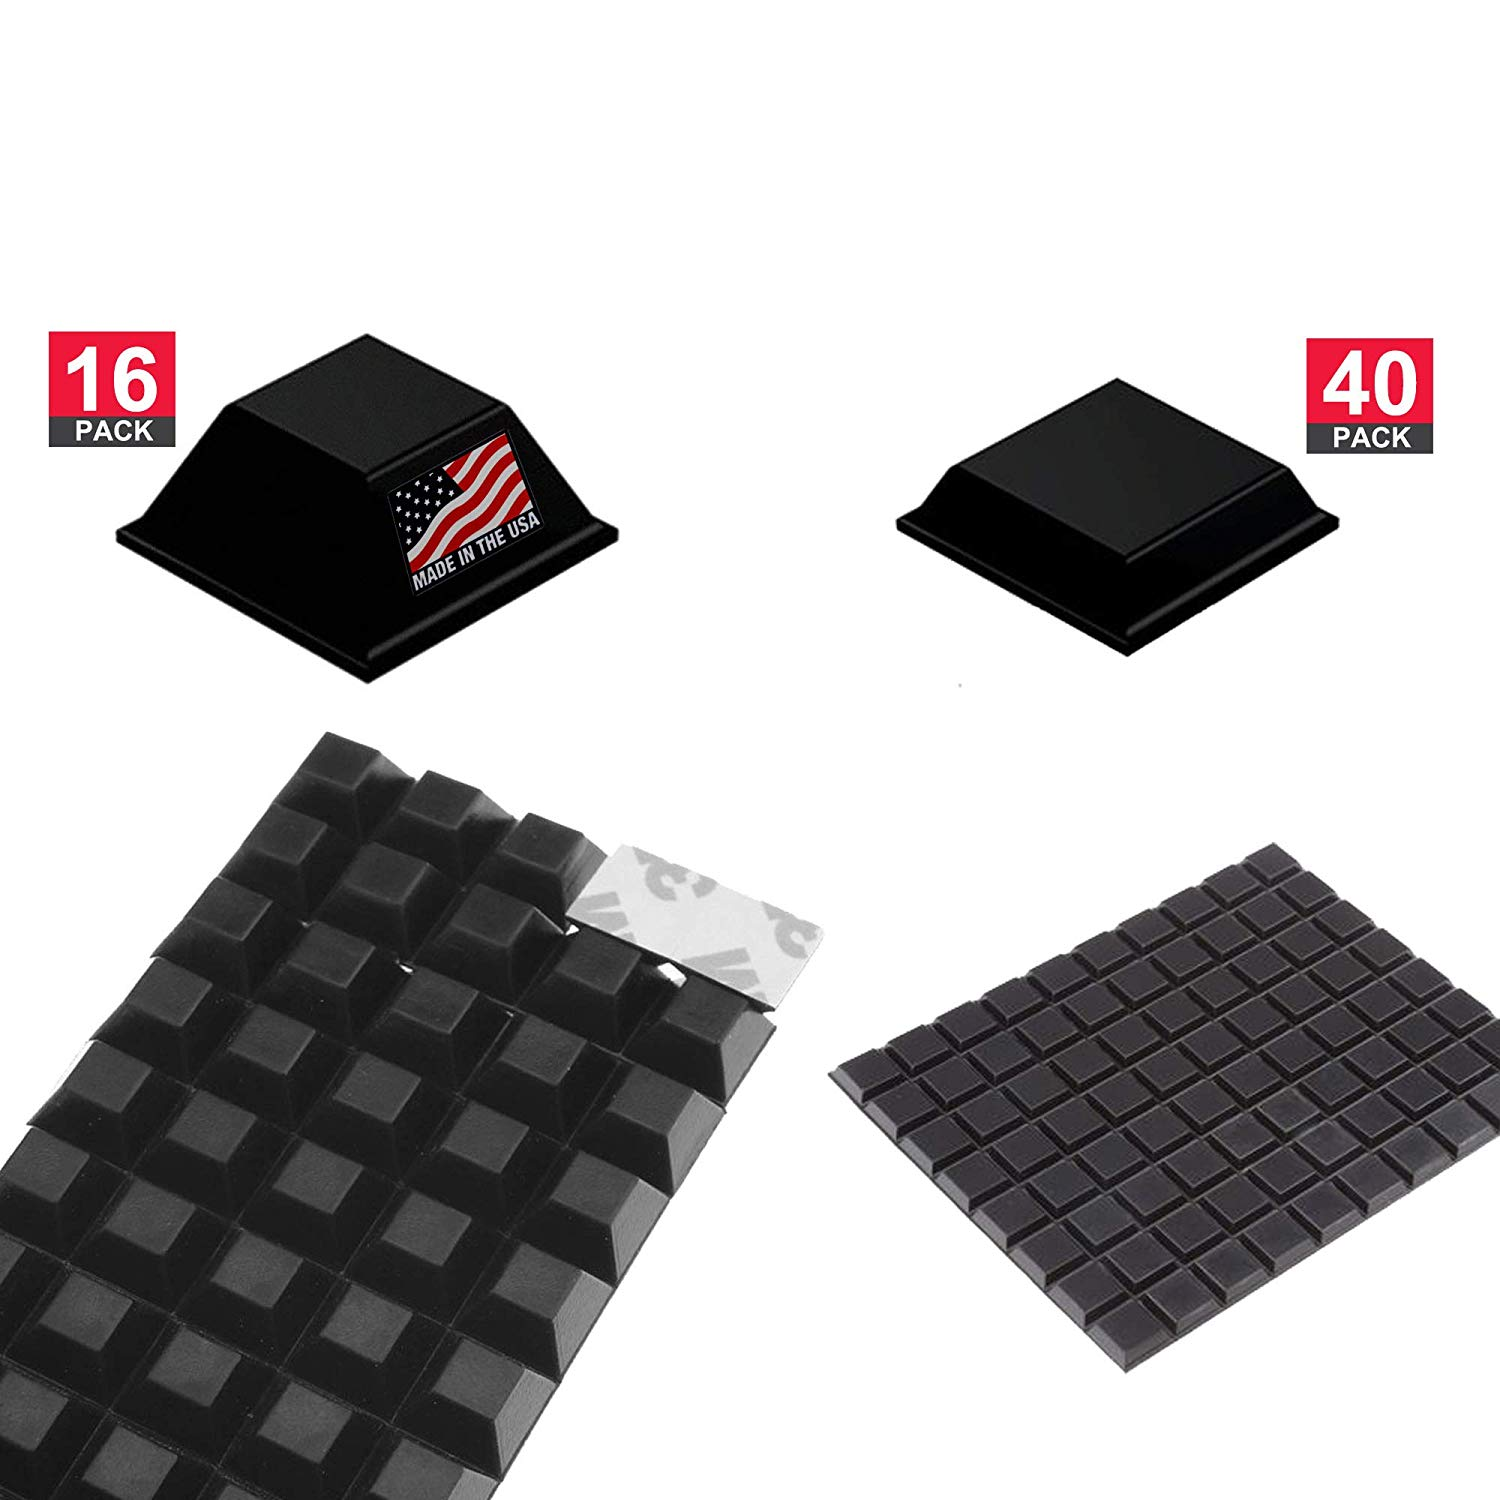 Volarium Self Adhesive Rubber Bumper Pads: 56-PCs Square Combo Pack, Protectors and Rubber Feet for Electronics, Keyboard, Furniture and Laptop; Rubber Feet Adhesive, Sound Dampening, Non-Skid Feet